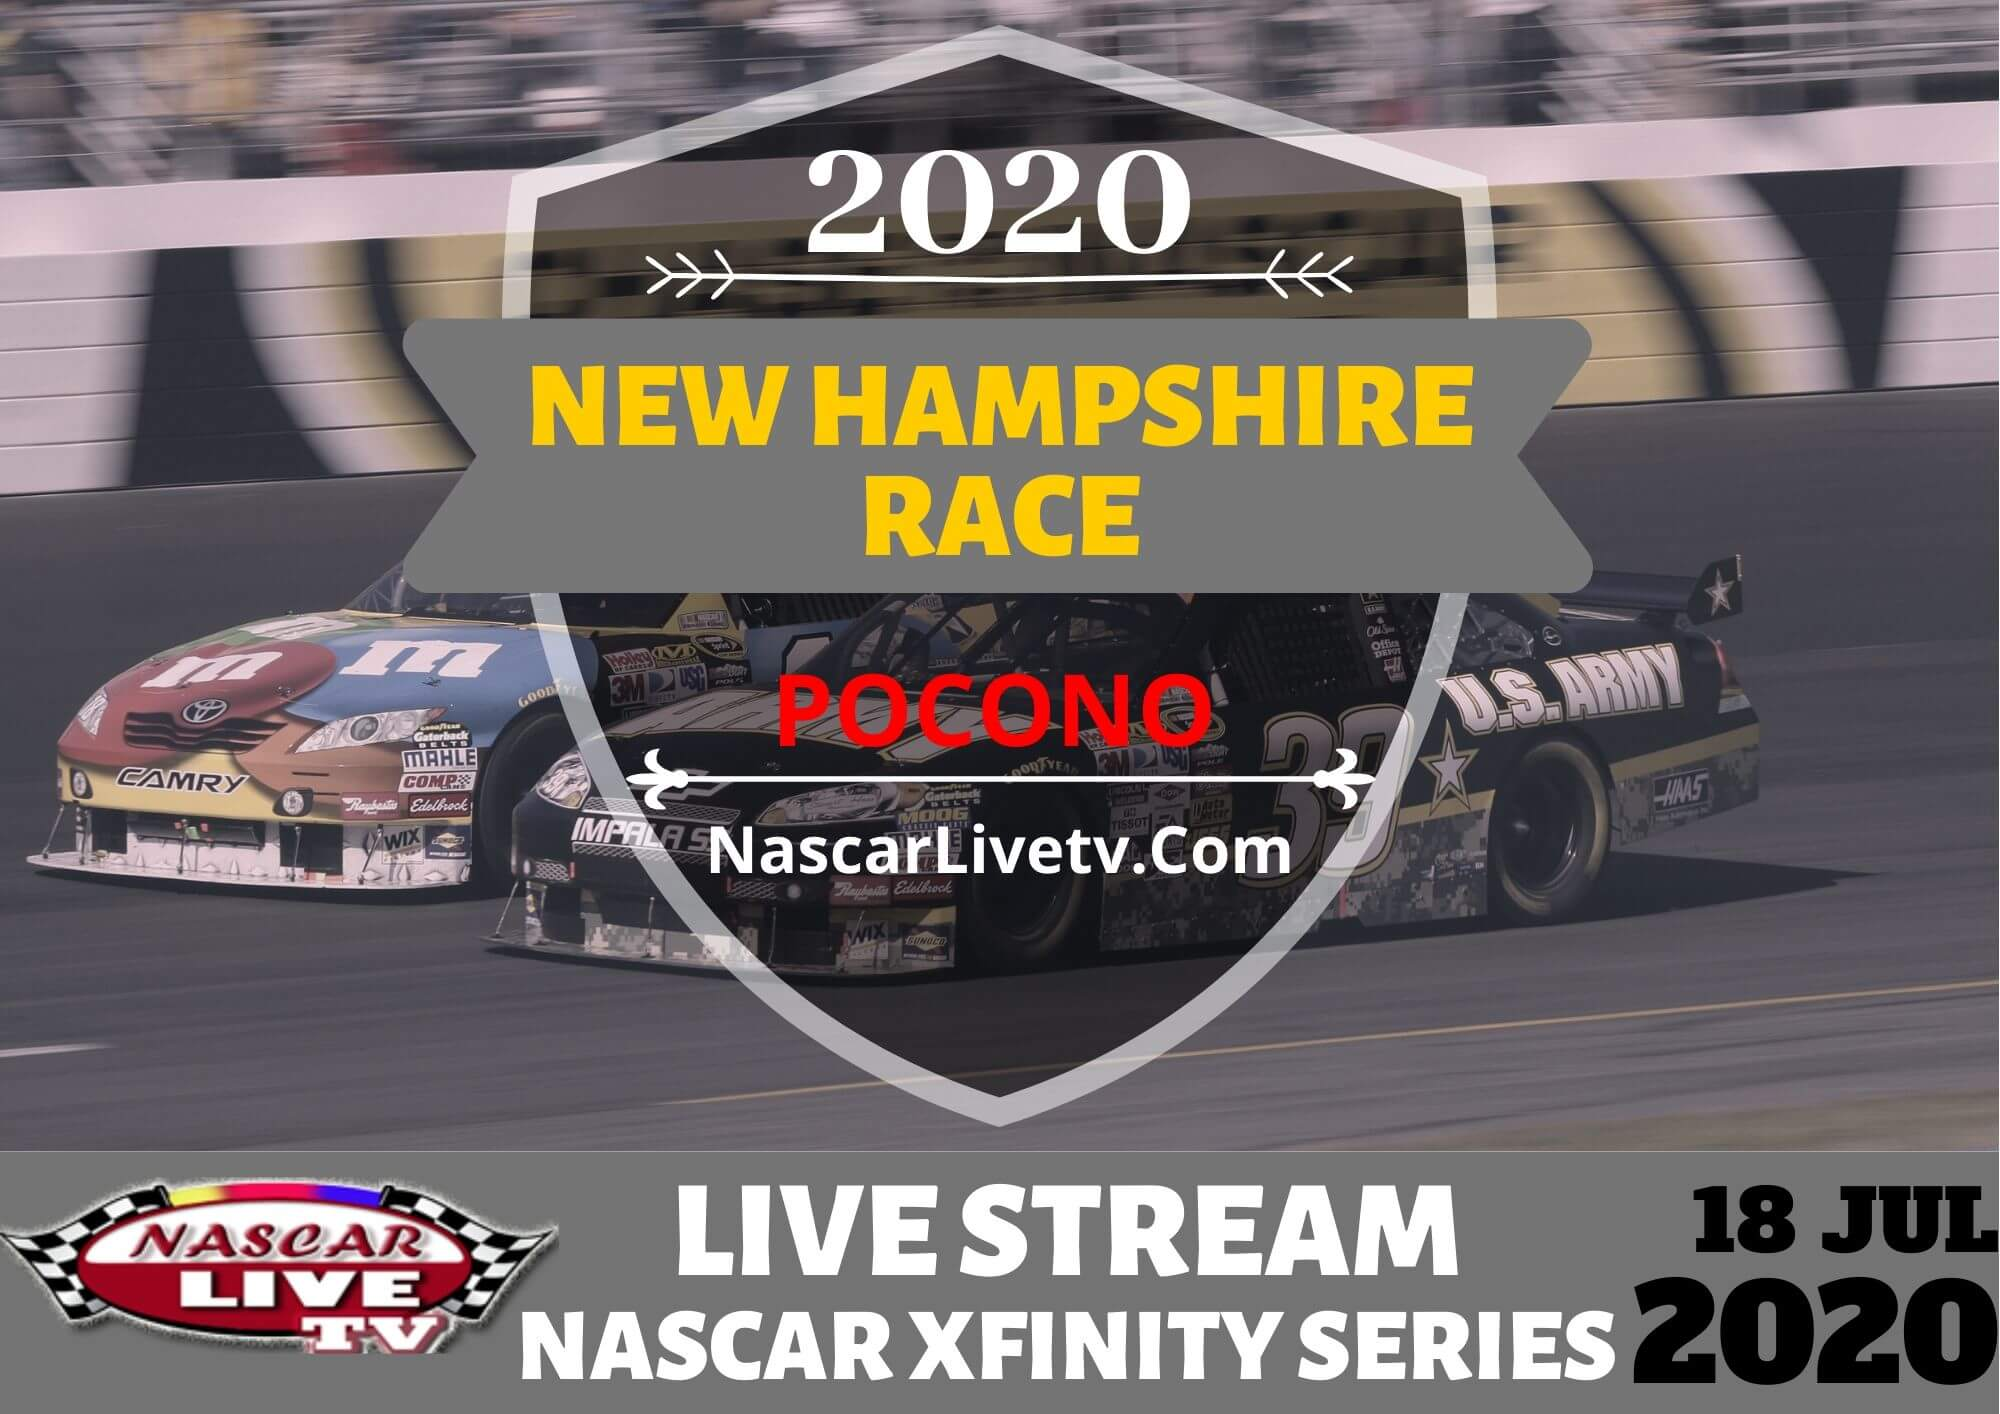 NASCAR Xfinity Series At New Hampshire Practice 1 Live Stream 2020